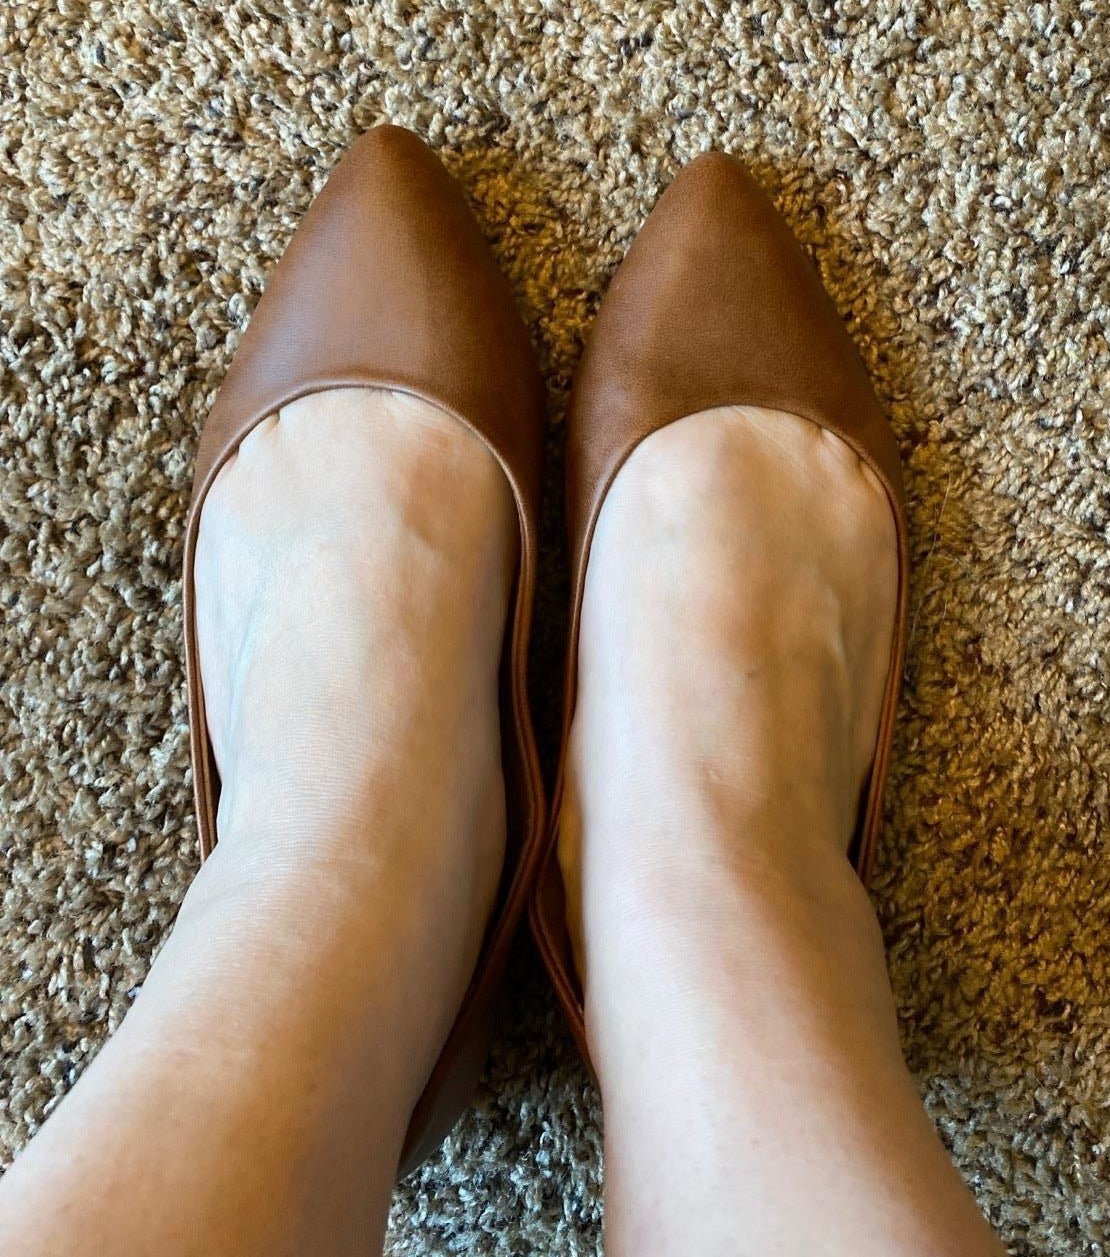 reviewer's wearing the brown flats